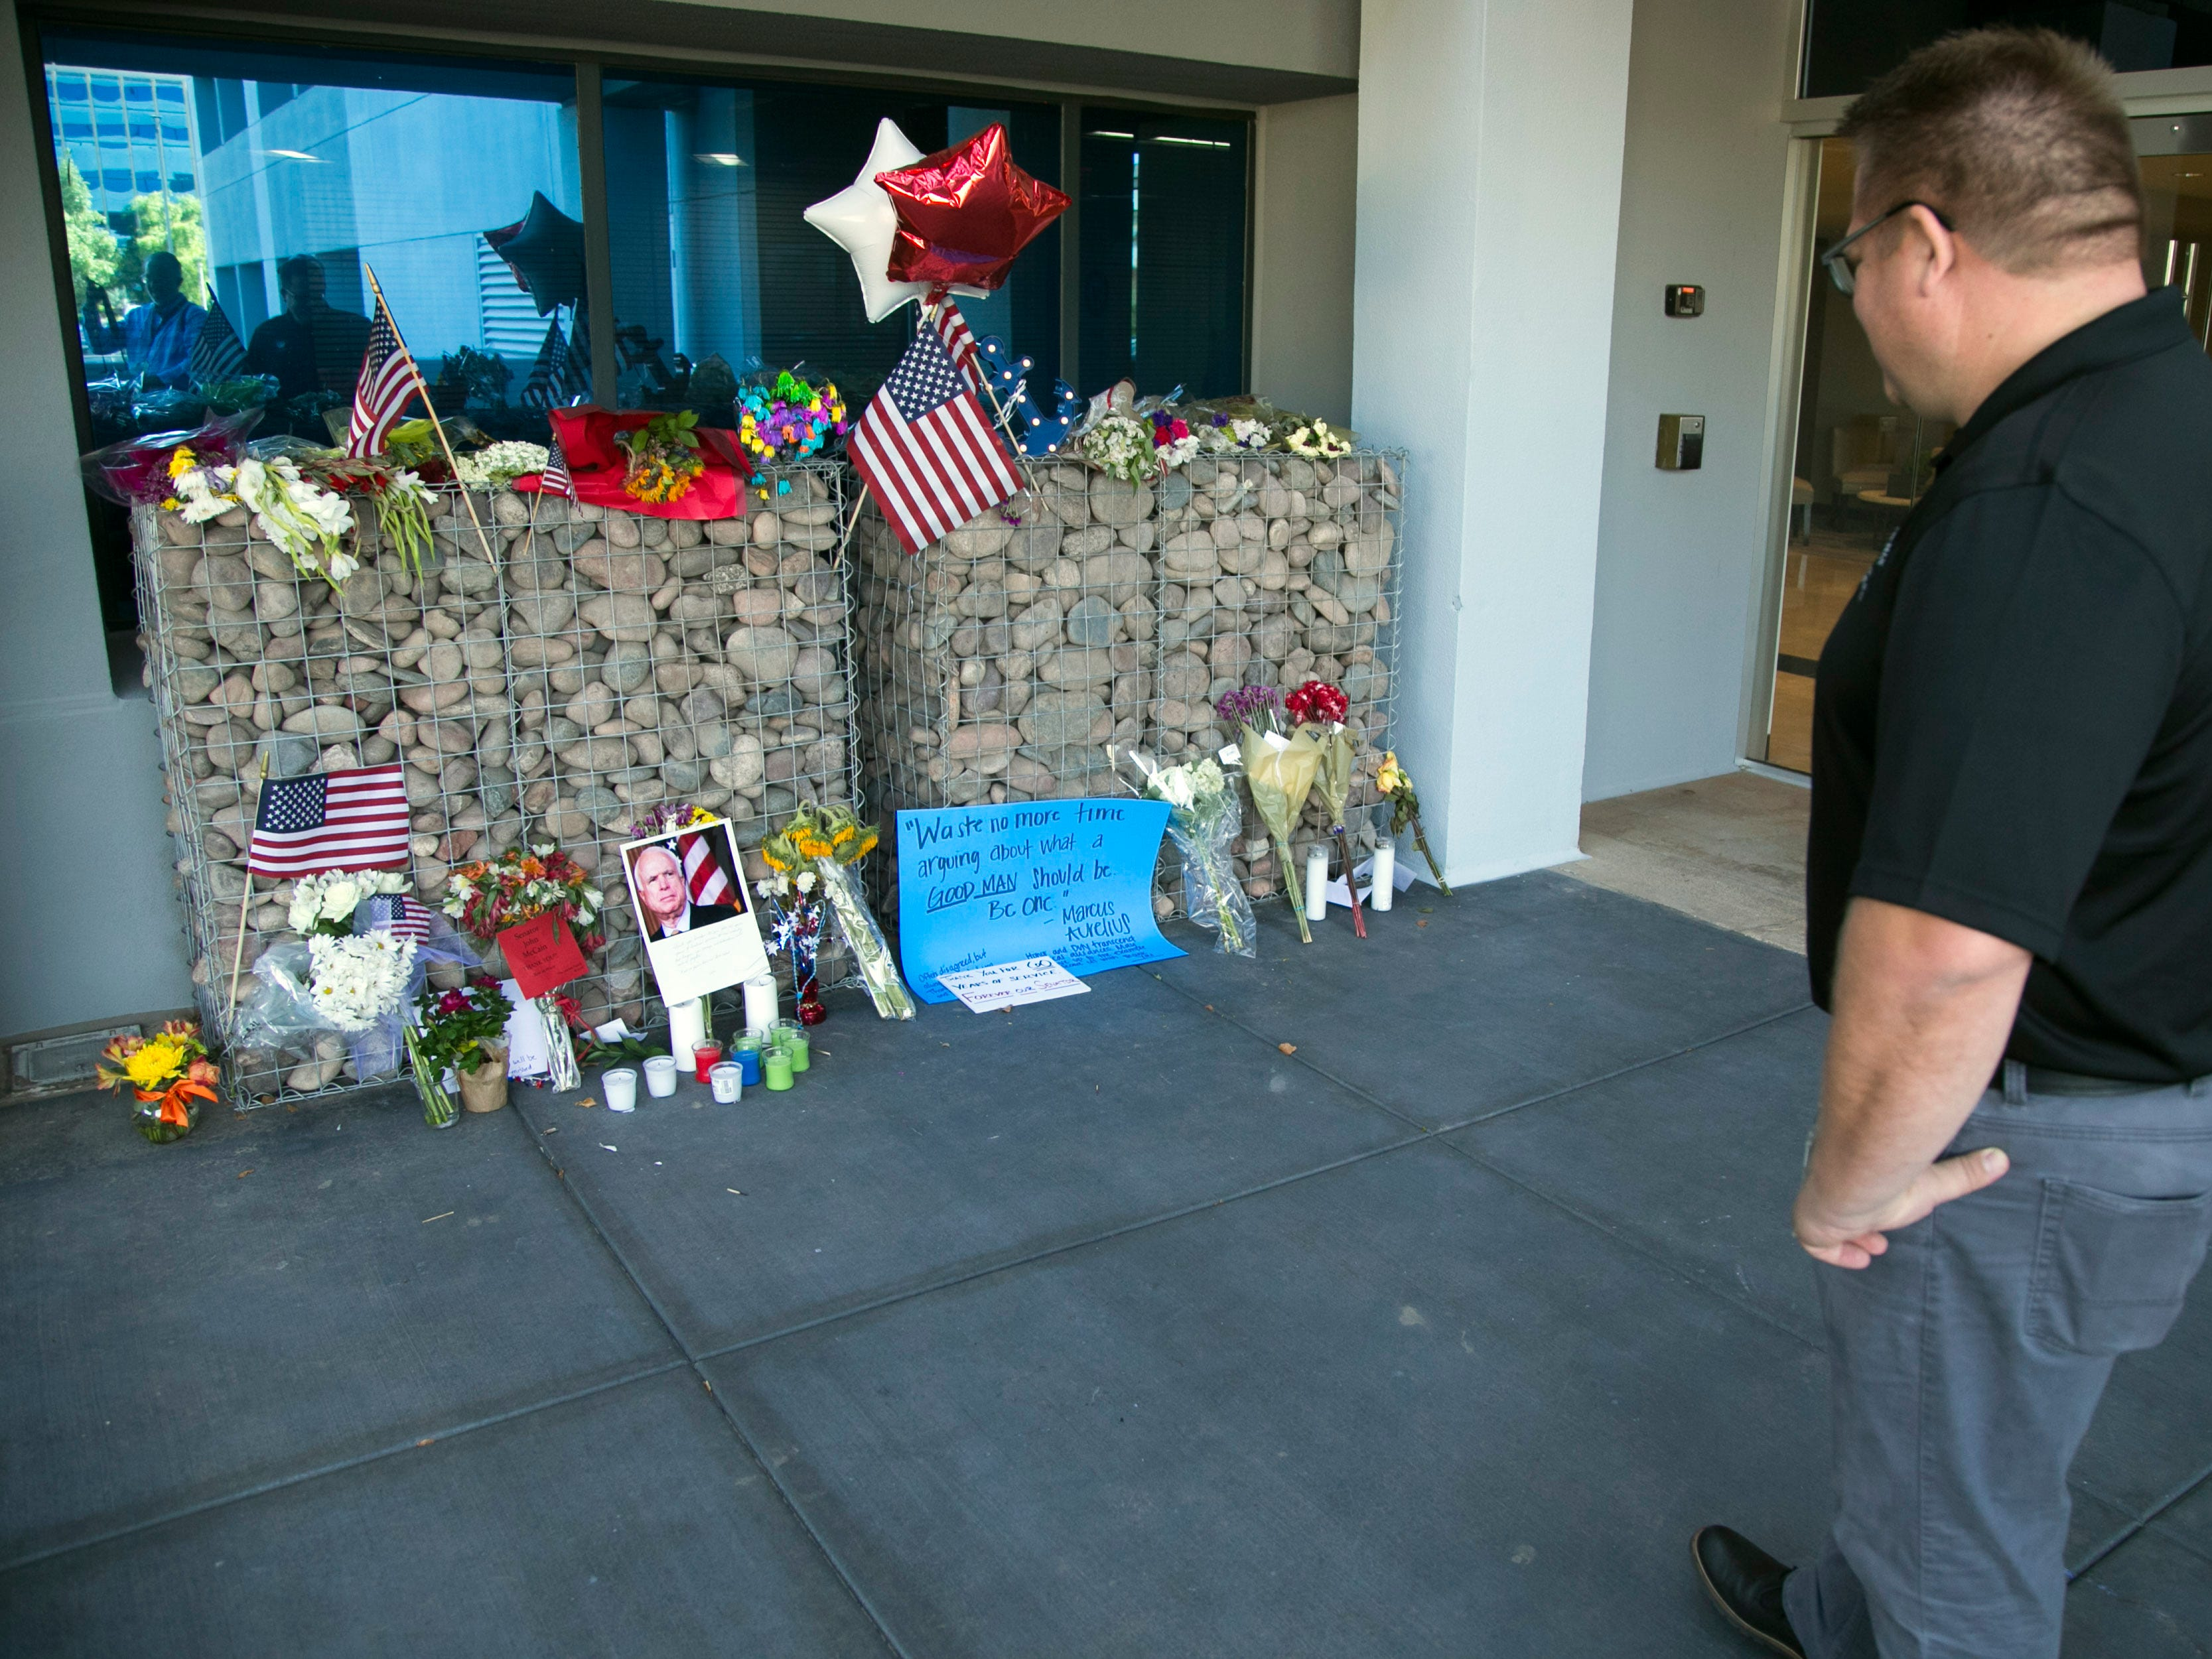 Ted Olsen of Phoenix looks at a memorial for Sen. John McCain at McCain's office in Phoenix on Aug. 27, 2018.